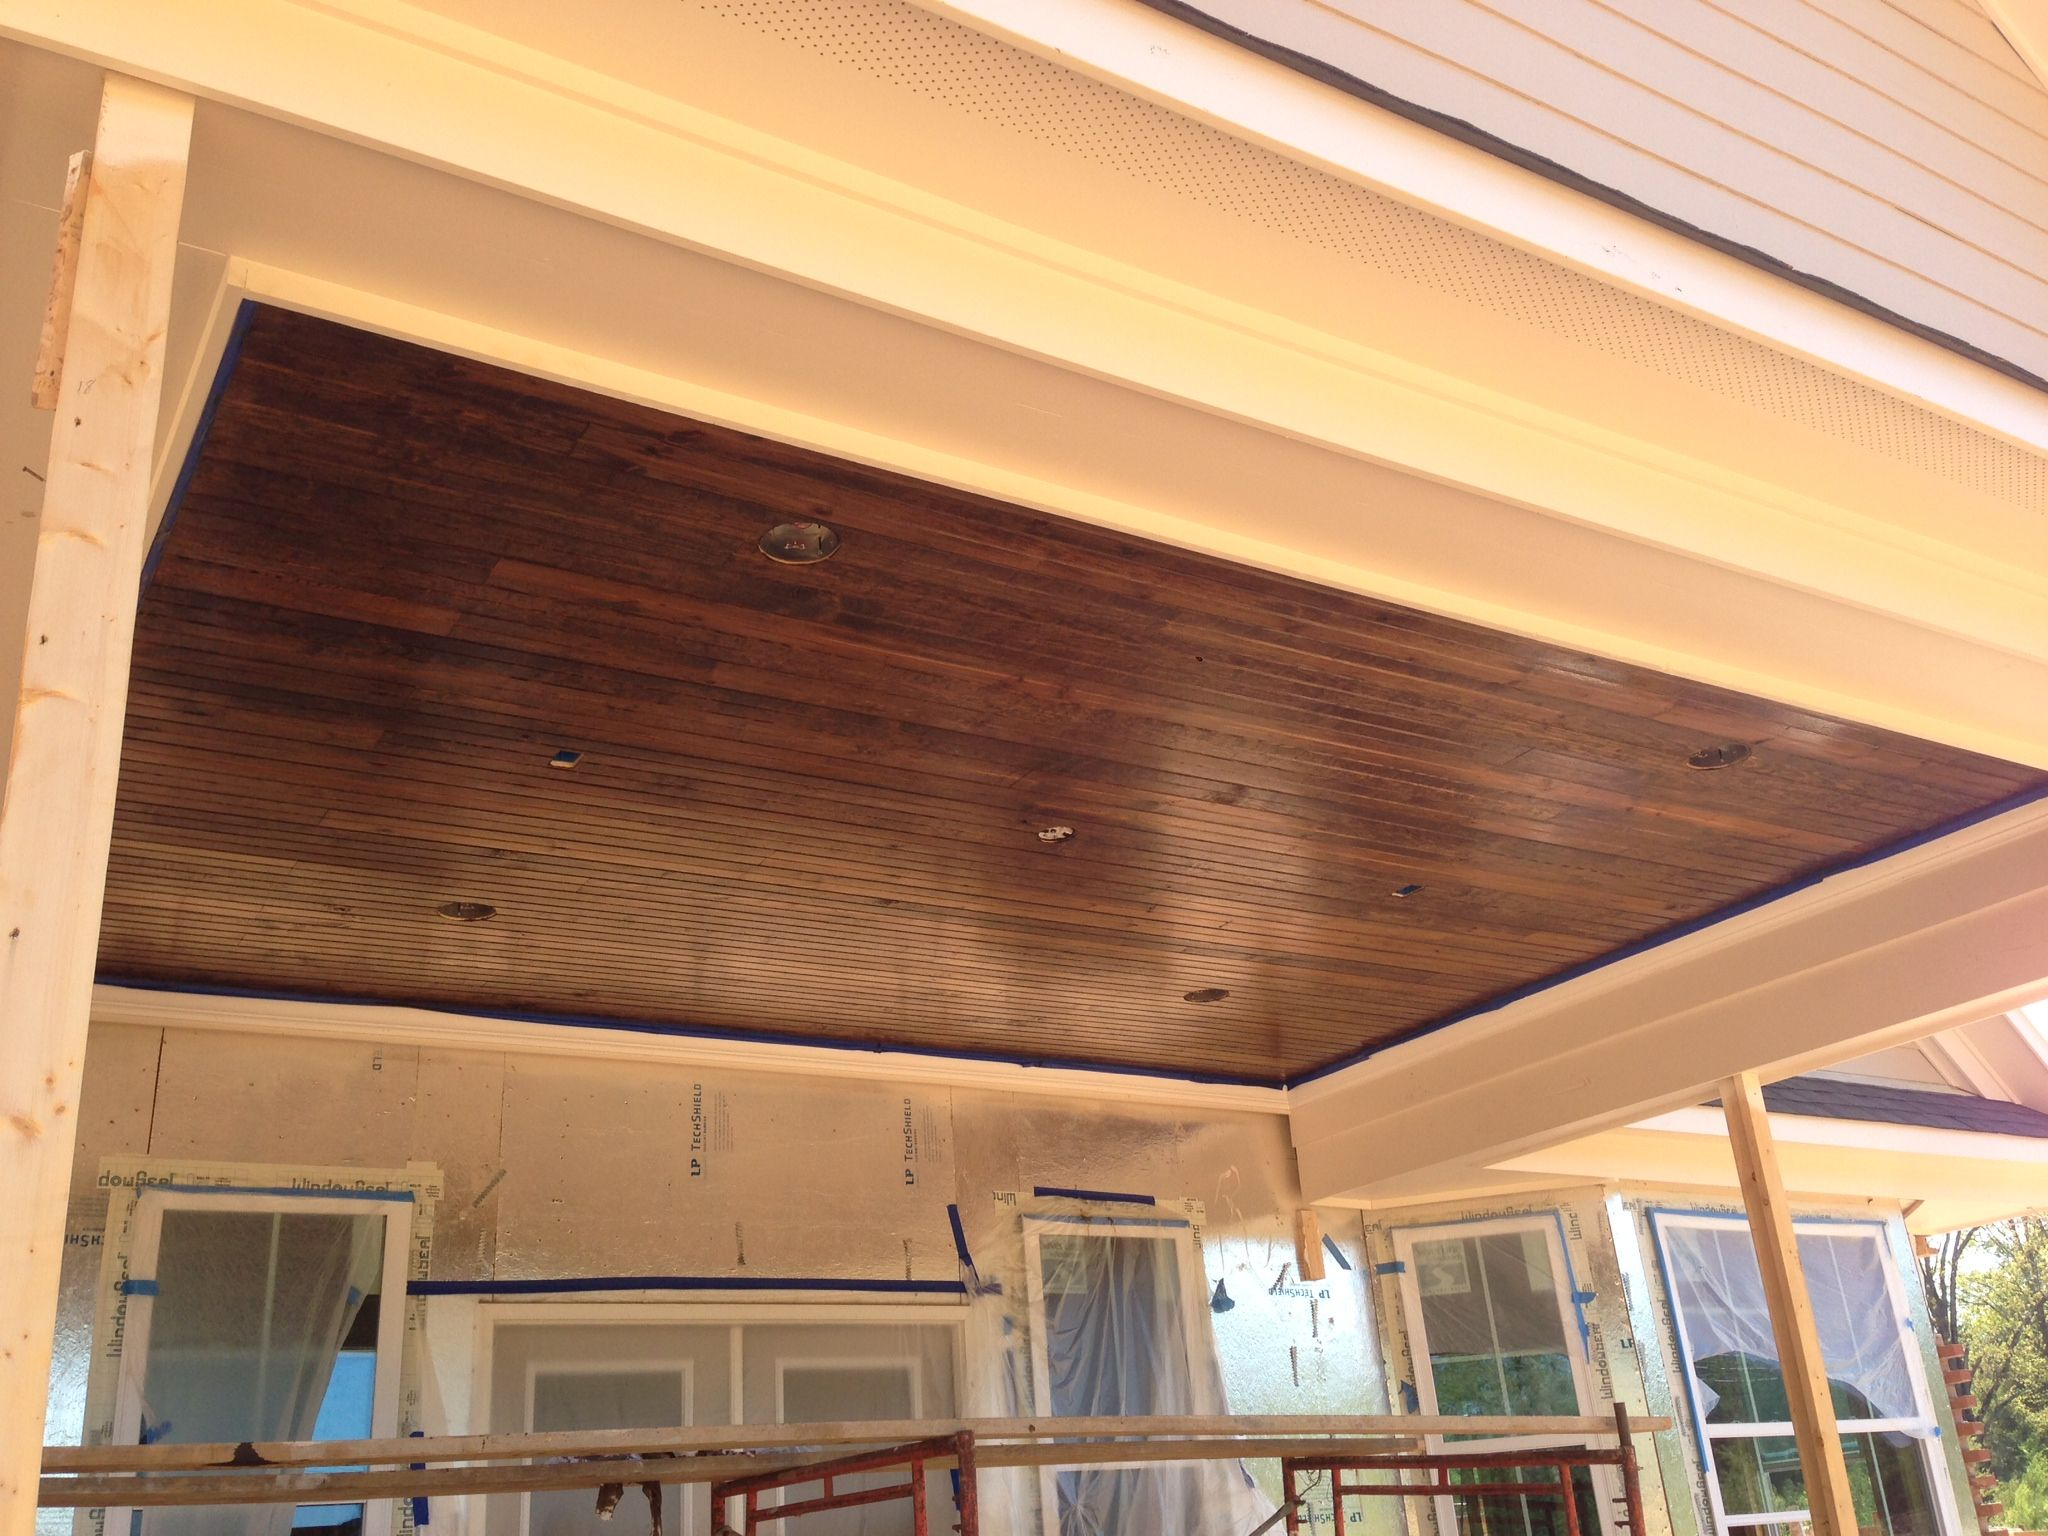 Our patio ceiling! Tongue / groove wood with a dark stain